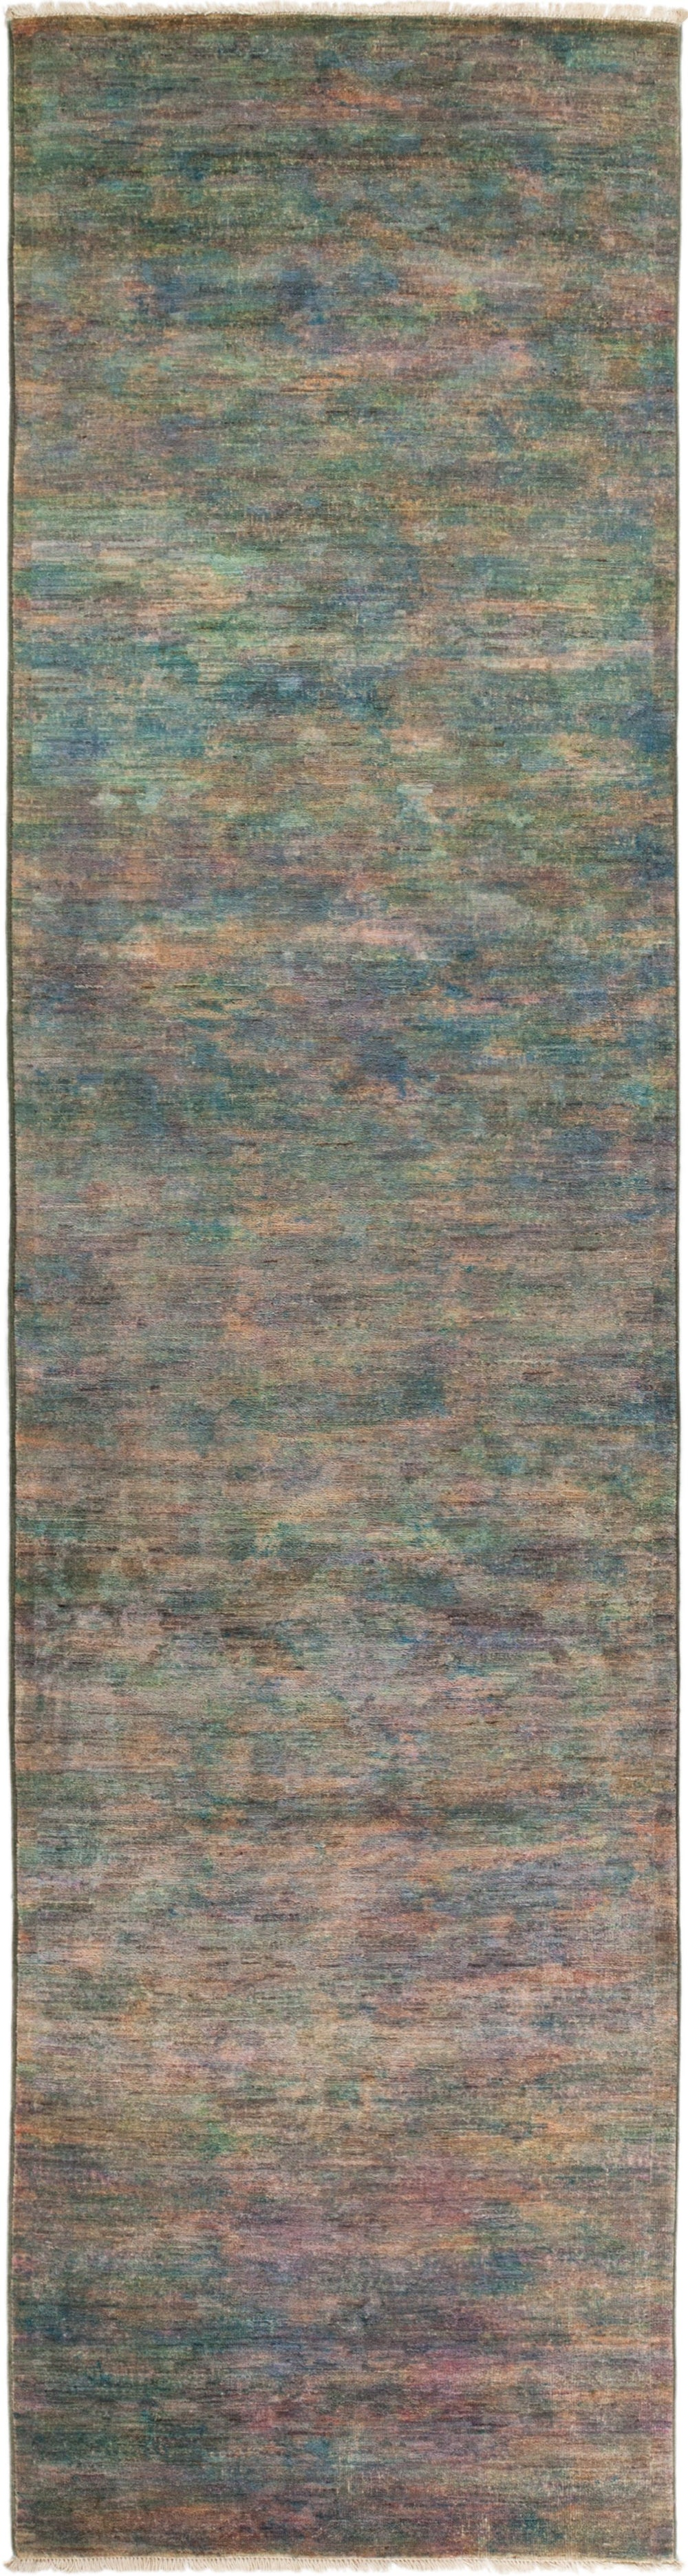 "Vibrance, Multi Wool Runner Rug - 3' 1"" x 12' 0"""